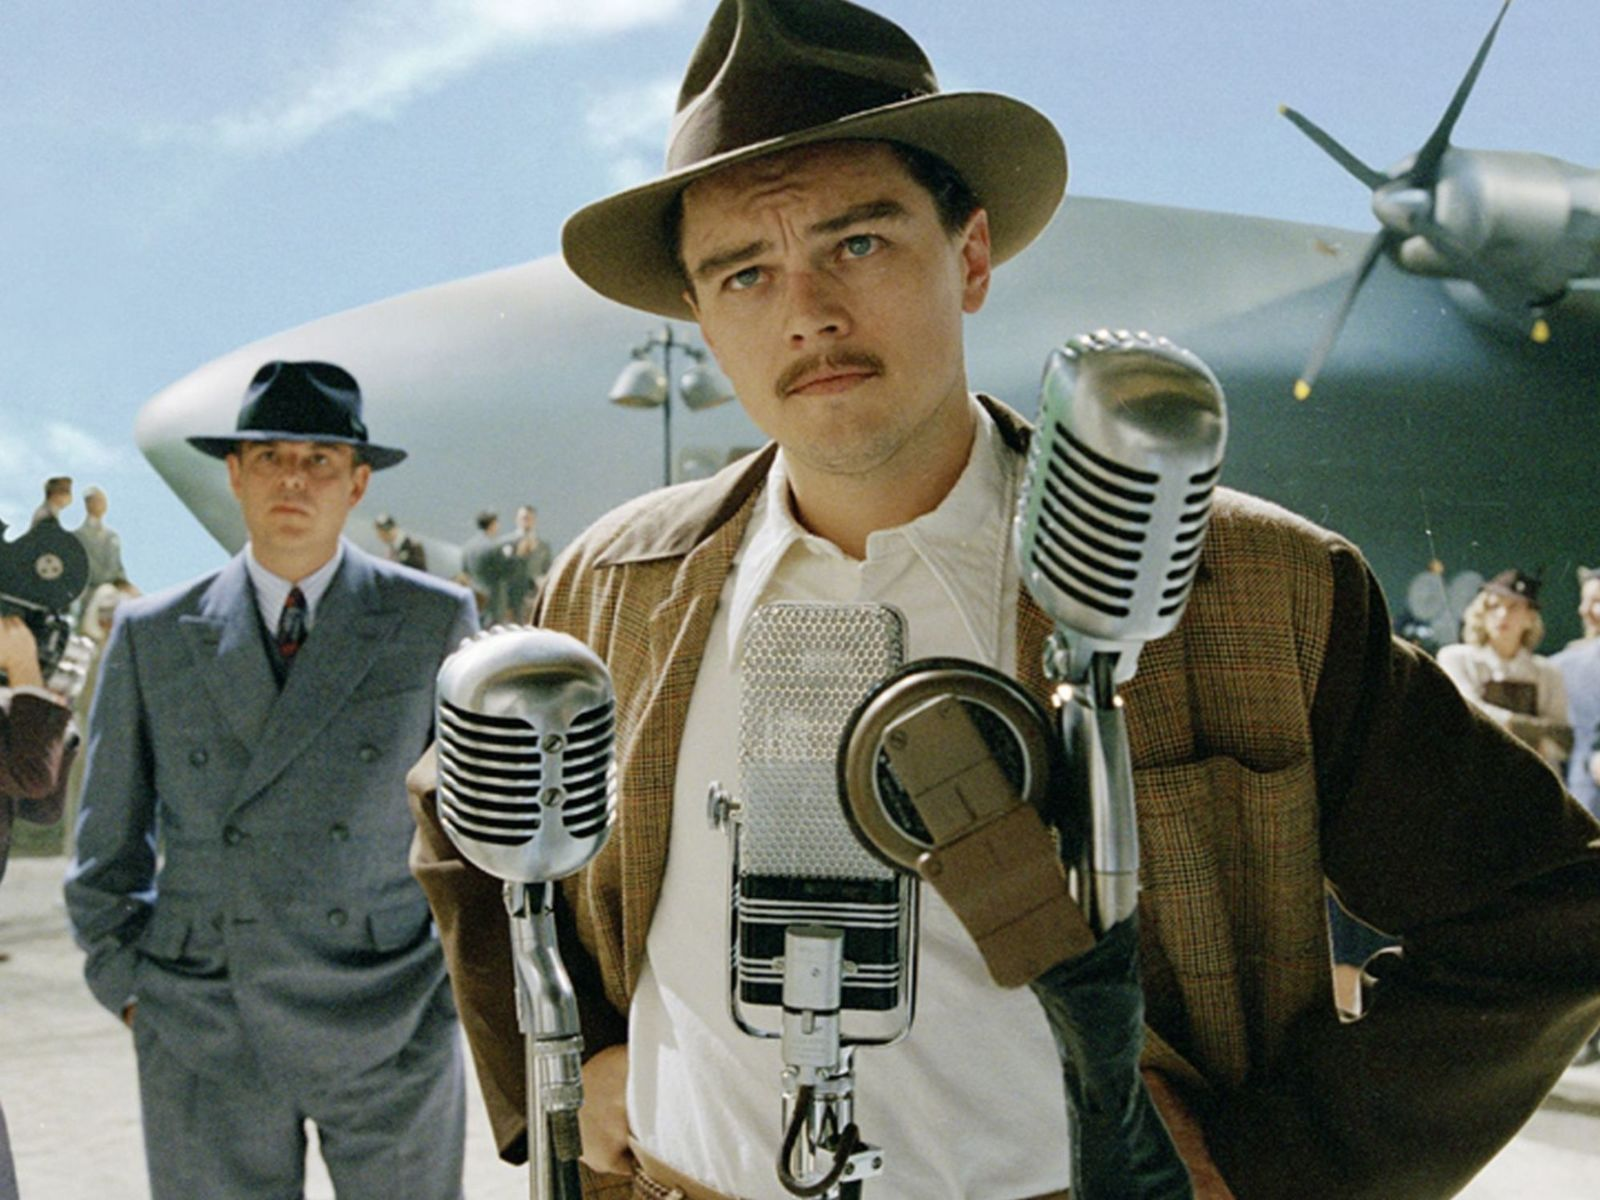 No Merchandising. Editorial Use Only. No Book Cover Usage. Mandatory Credit: Photo by Warner Bros./Kobal/REX/Shutterstock (5886163bw) Leonardo Dicaprio The Aviator - 2004 Director: Martin Scorsese Warner Bros. USA Scene Still Drama Aviator